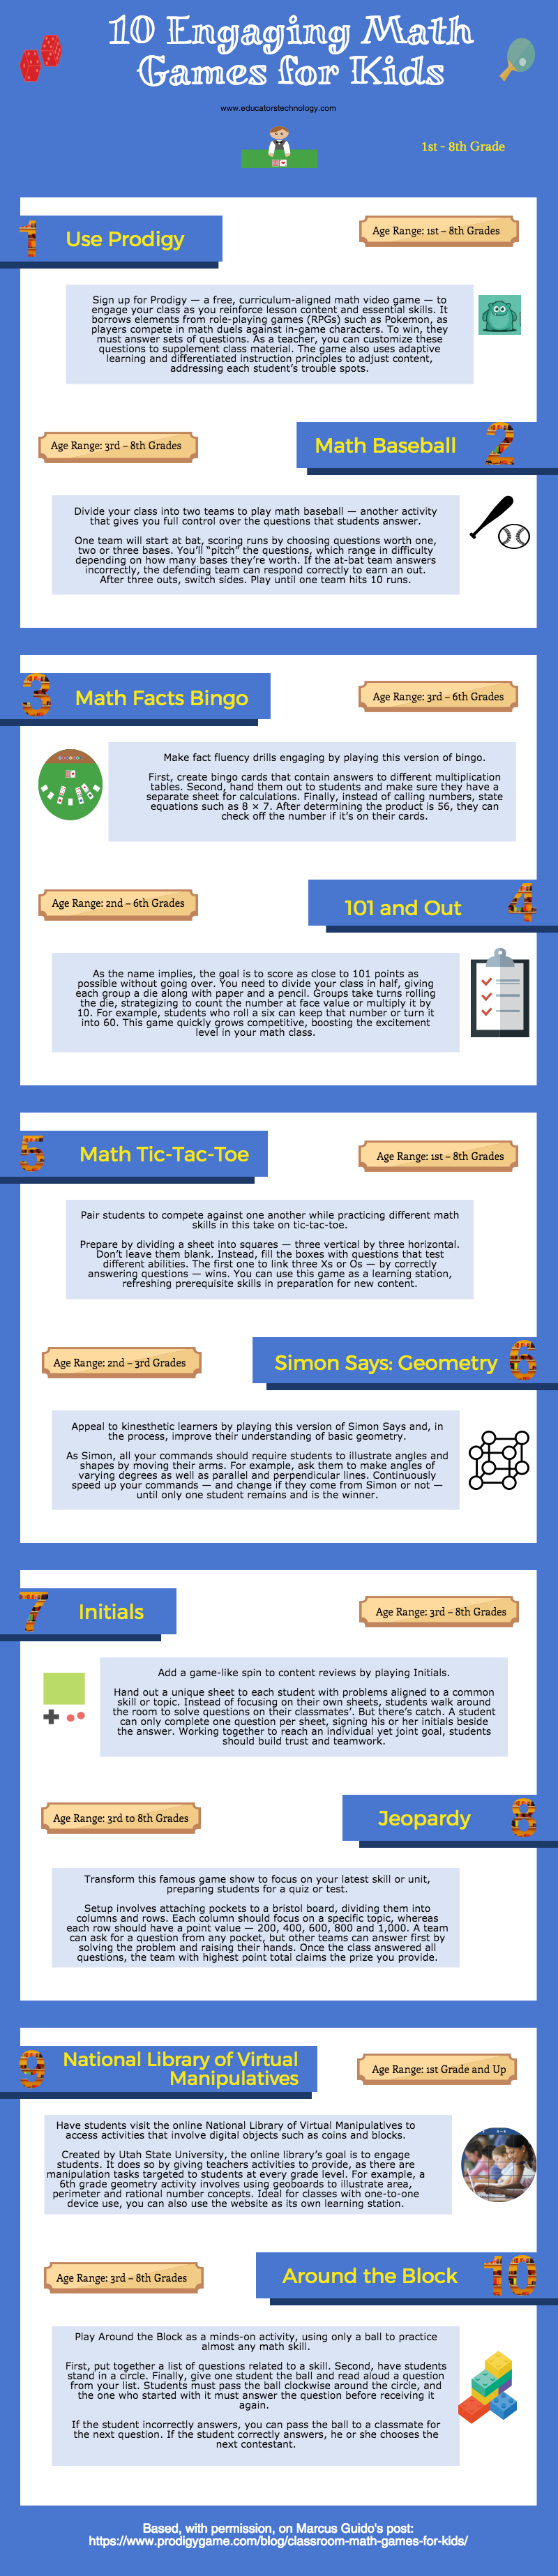 10 Engaging Math Games for Kids